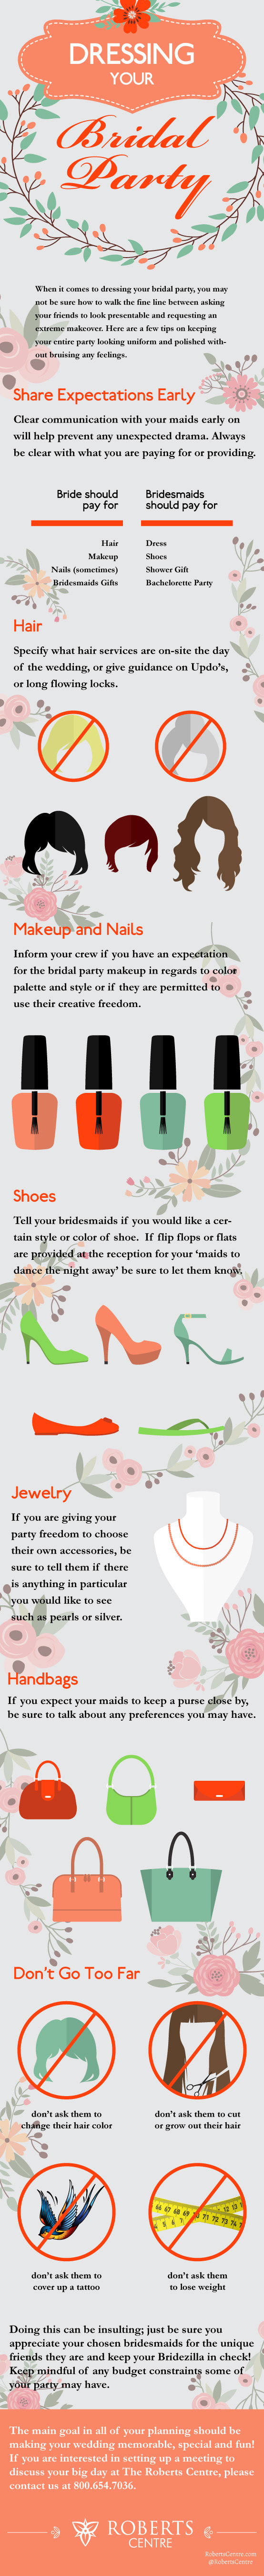 Dressing-your-Bridal-Party